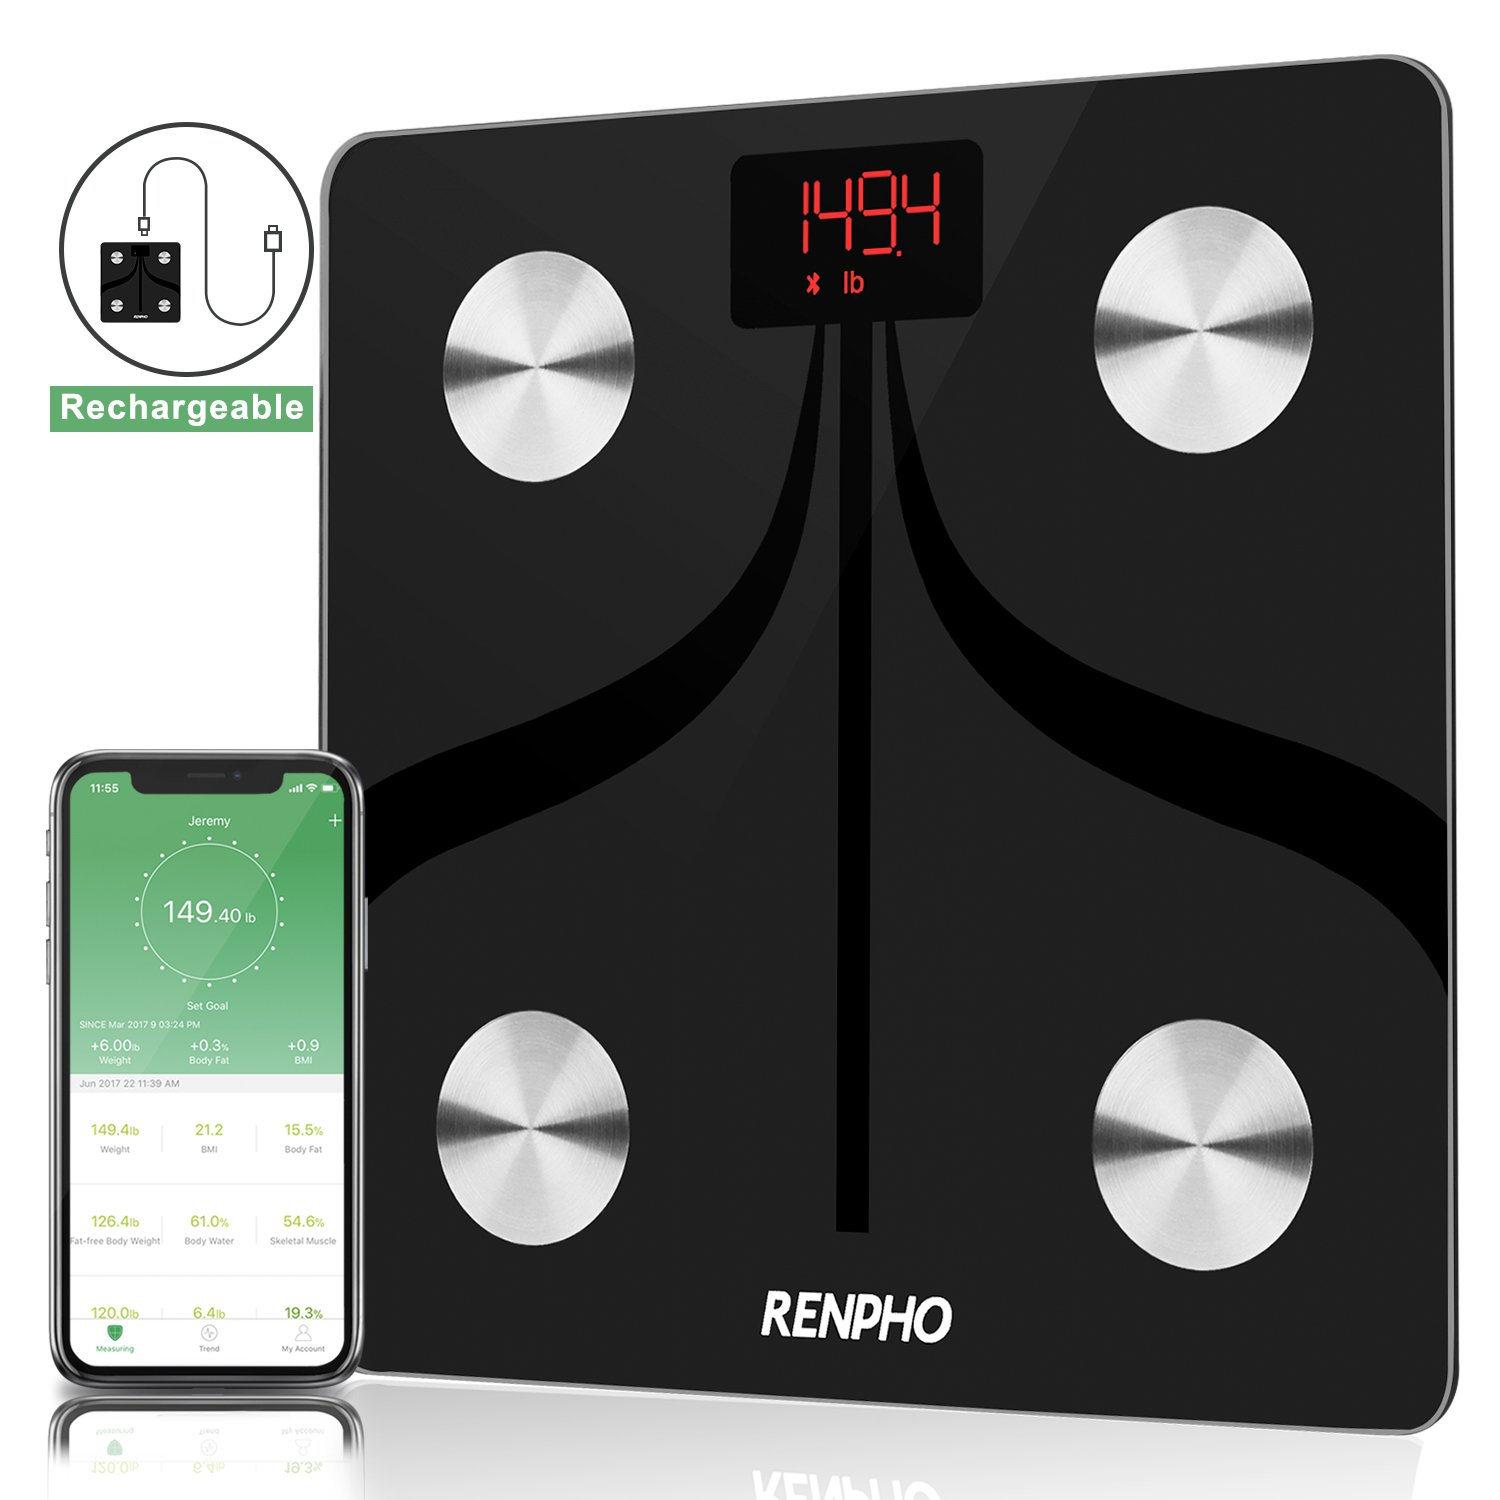 RENPHO Bluetooth Body Fat Scale USB Rechargeable Smart Digital Bathroom Weight Scale with Smartphone App Wireless BMI Scale for Body Weight, Body Fat%, BMI, Water, Muscle Mass Body Fat Monitors, 396 lbs product image